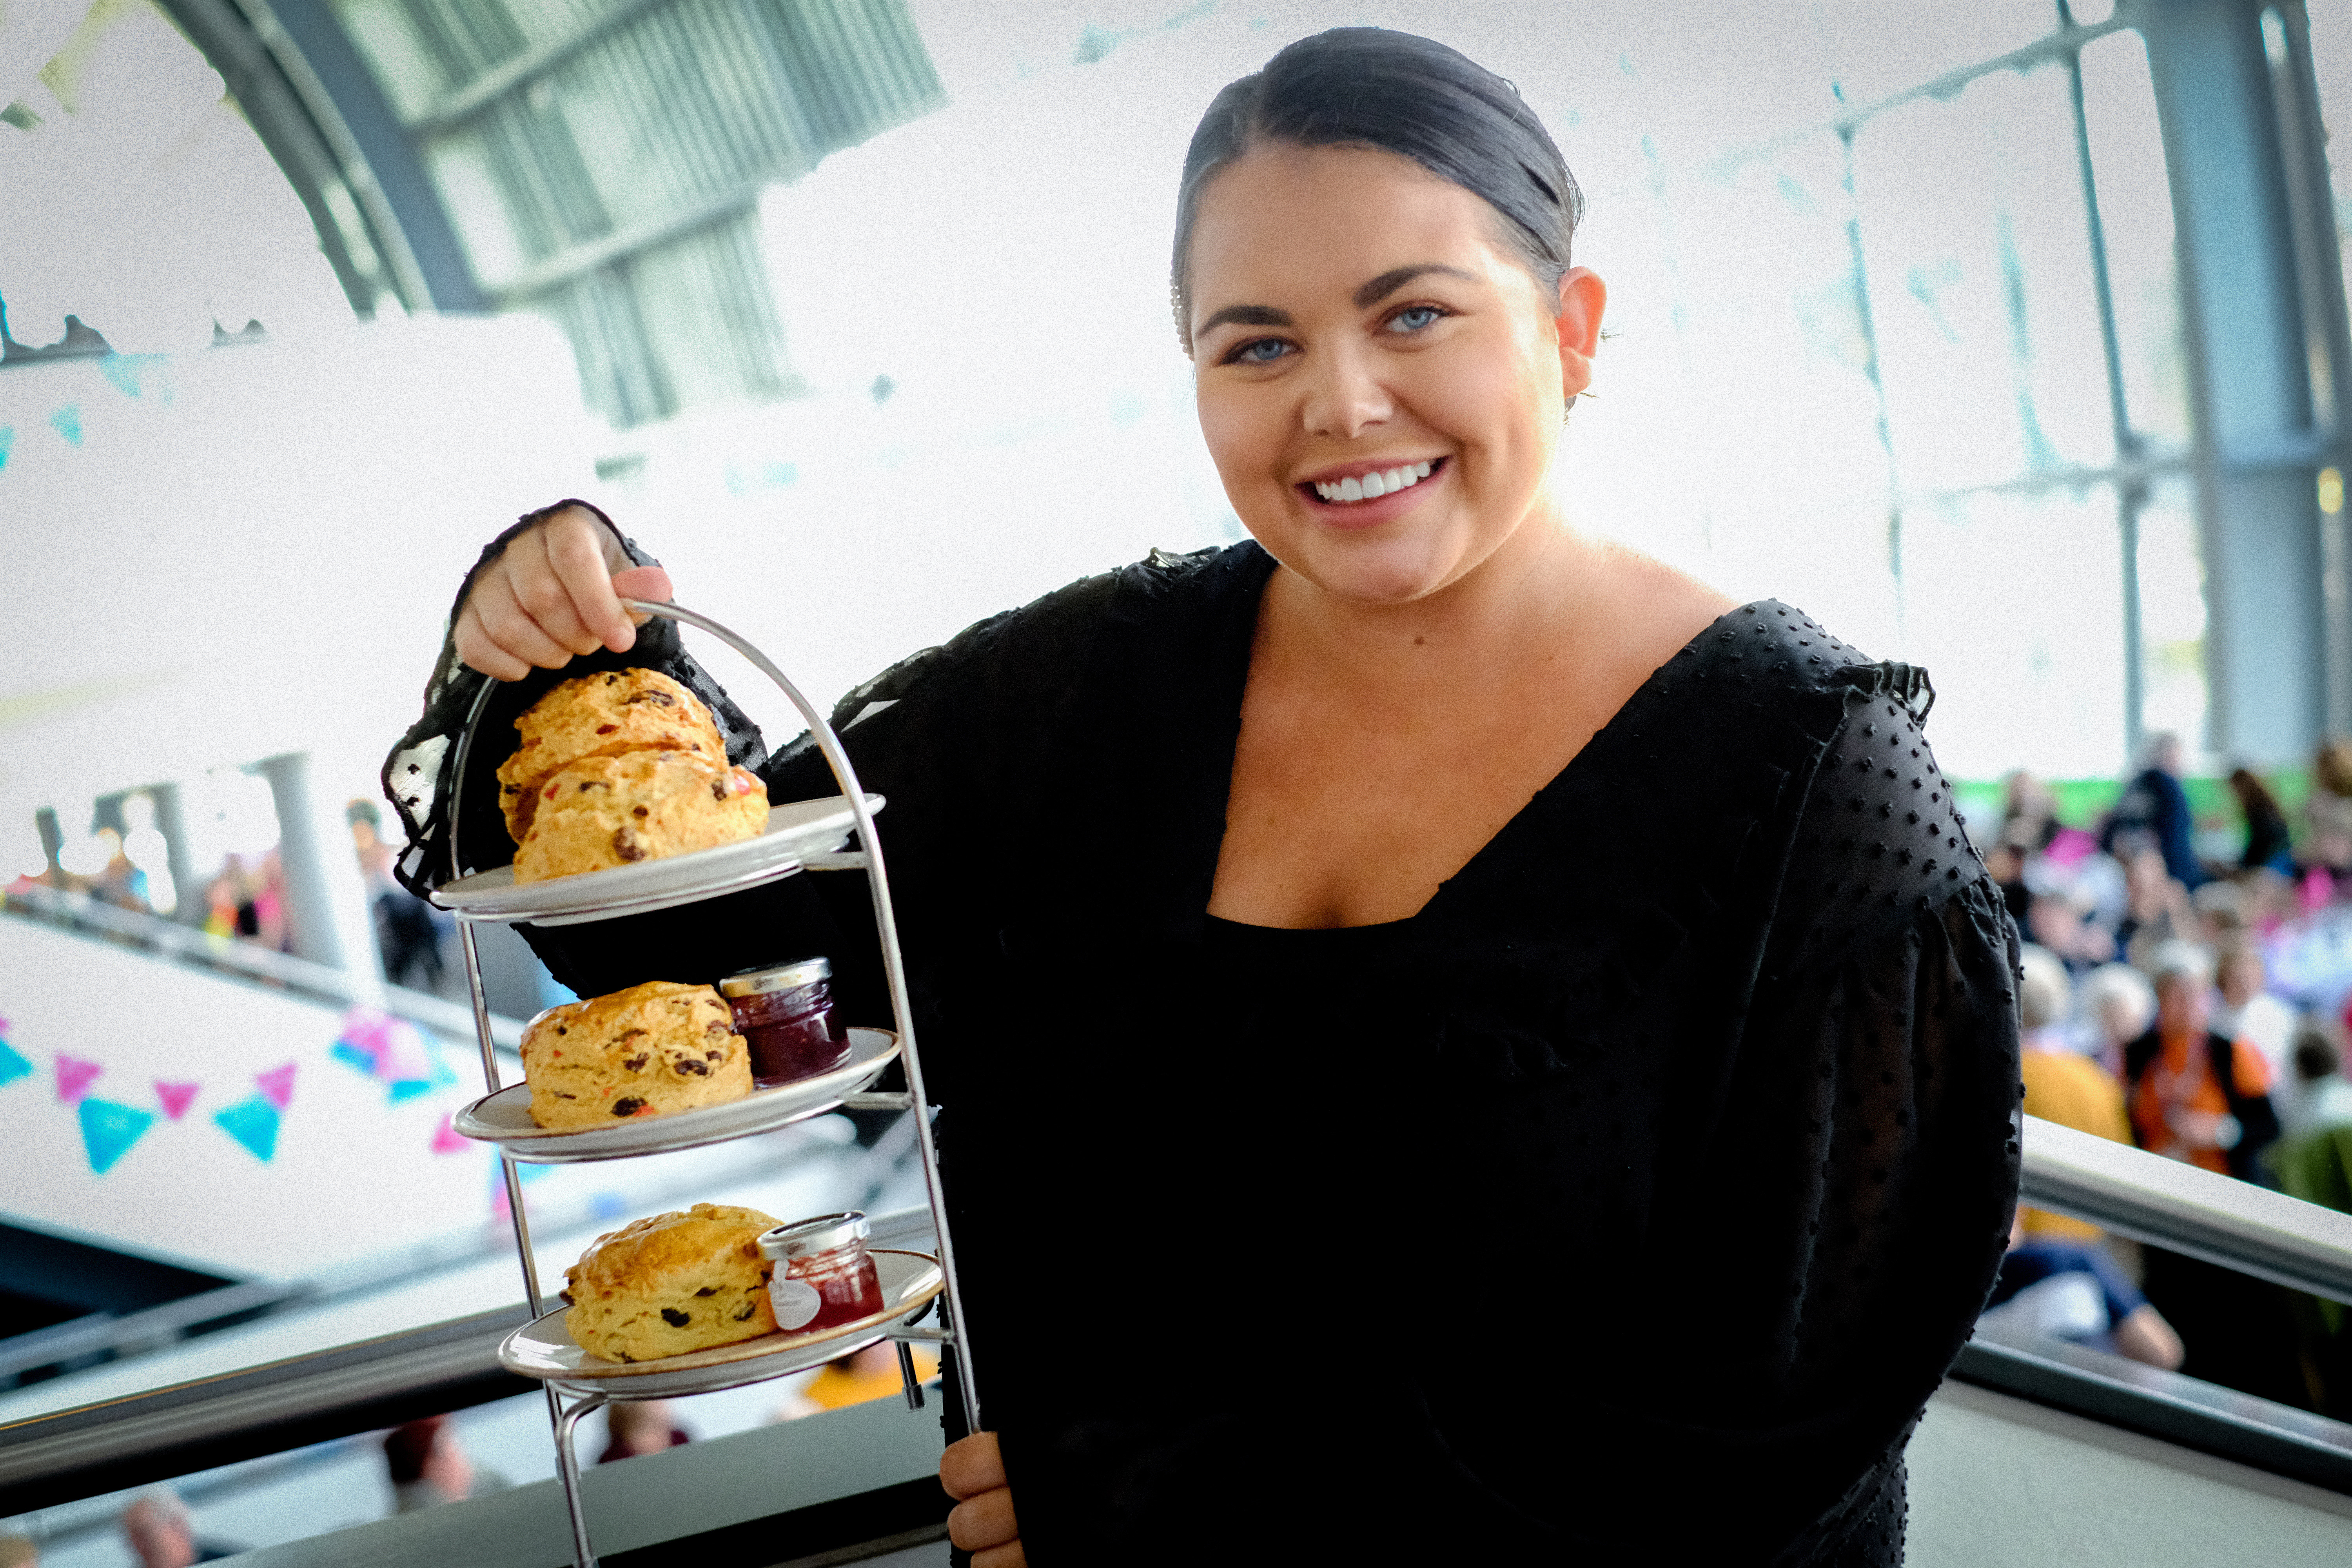 GATESHEAD, ENGLAND - OCTOBER 23: TV personality, Scarlett Moffatt, hosted a Guinness World Records TM attempt for the Largest Cream Tea Party, incelebration of TheNational Lottery's 25thBirthdayand its impact on bringing people together, on October 23, 2019 in Gateshead, England. Scarlett was joined by community heroes from across the UK at Sage Gateshead. (Photo by Thomas Jackson/Getty Images for National Lottery)